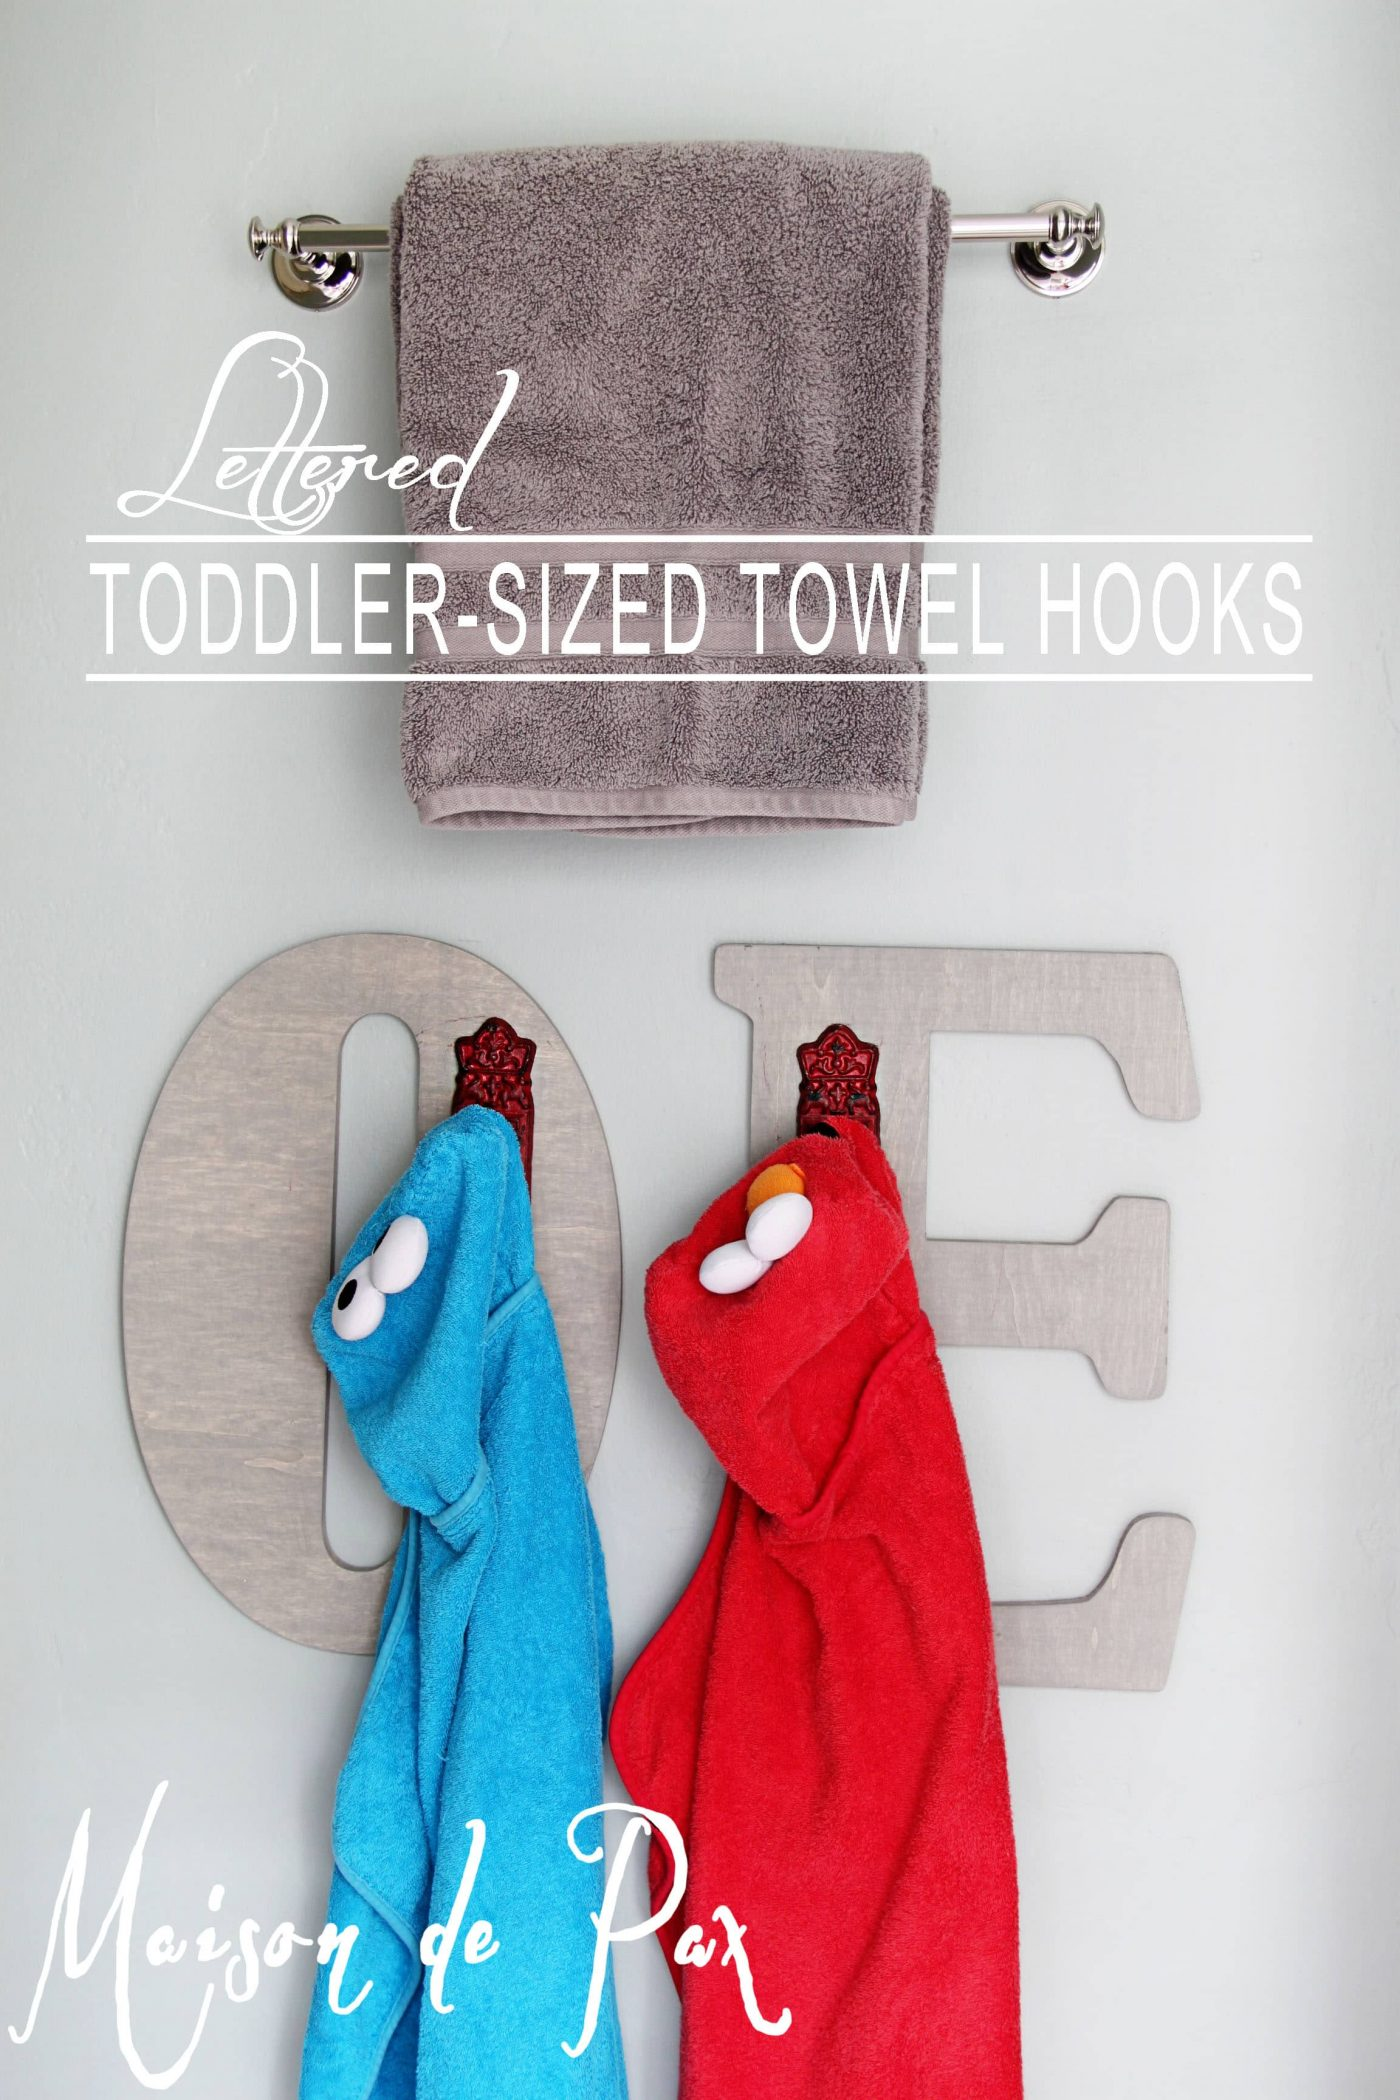 Create your own adorable toddler-sized towel hooks!